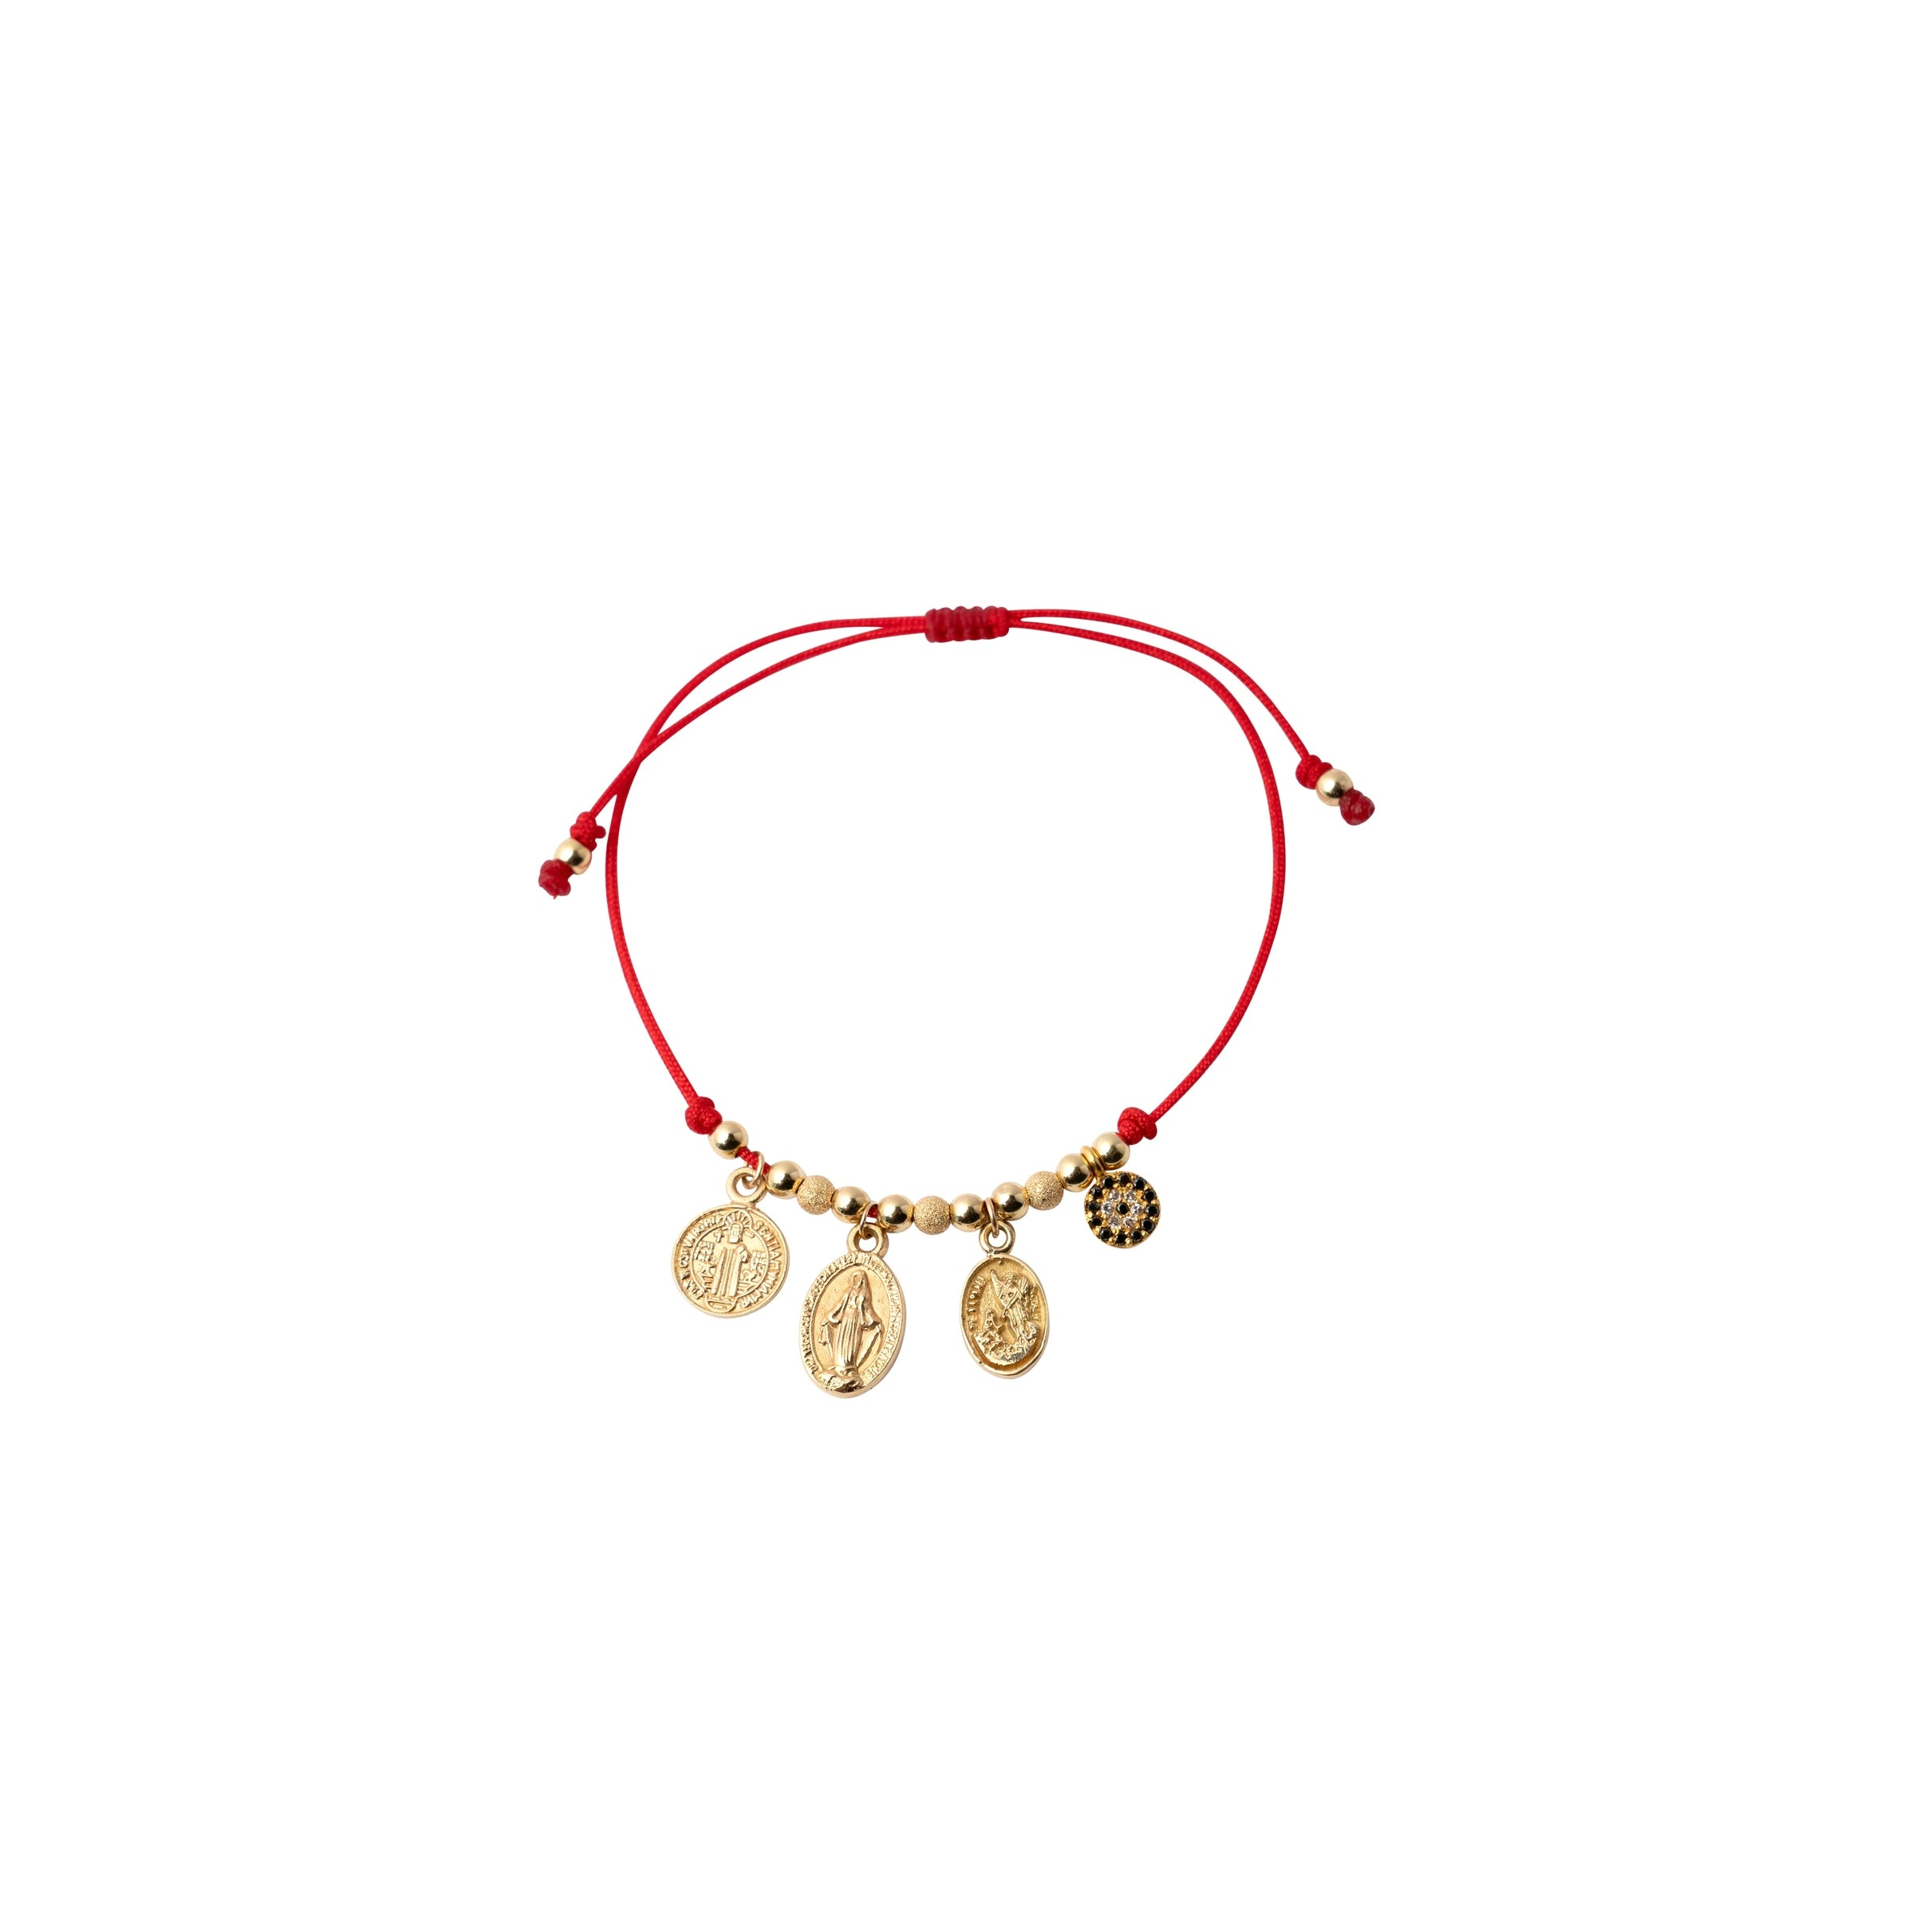 Red String Bracelet with Spiritual Charms